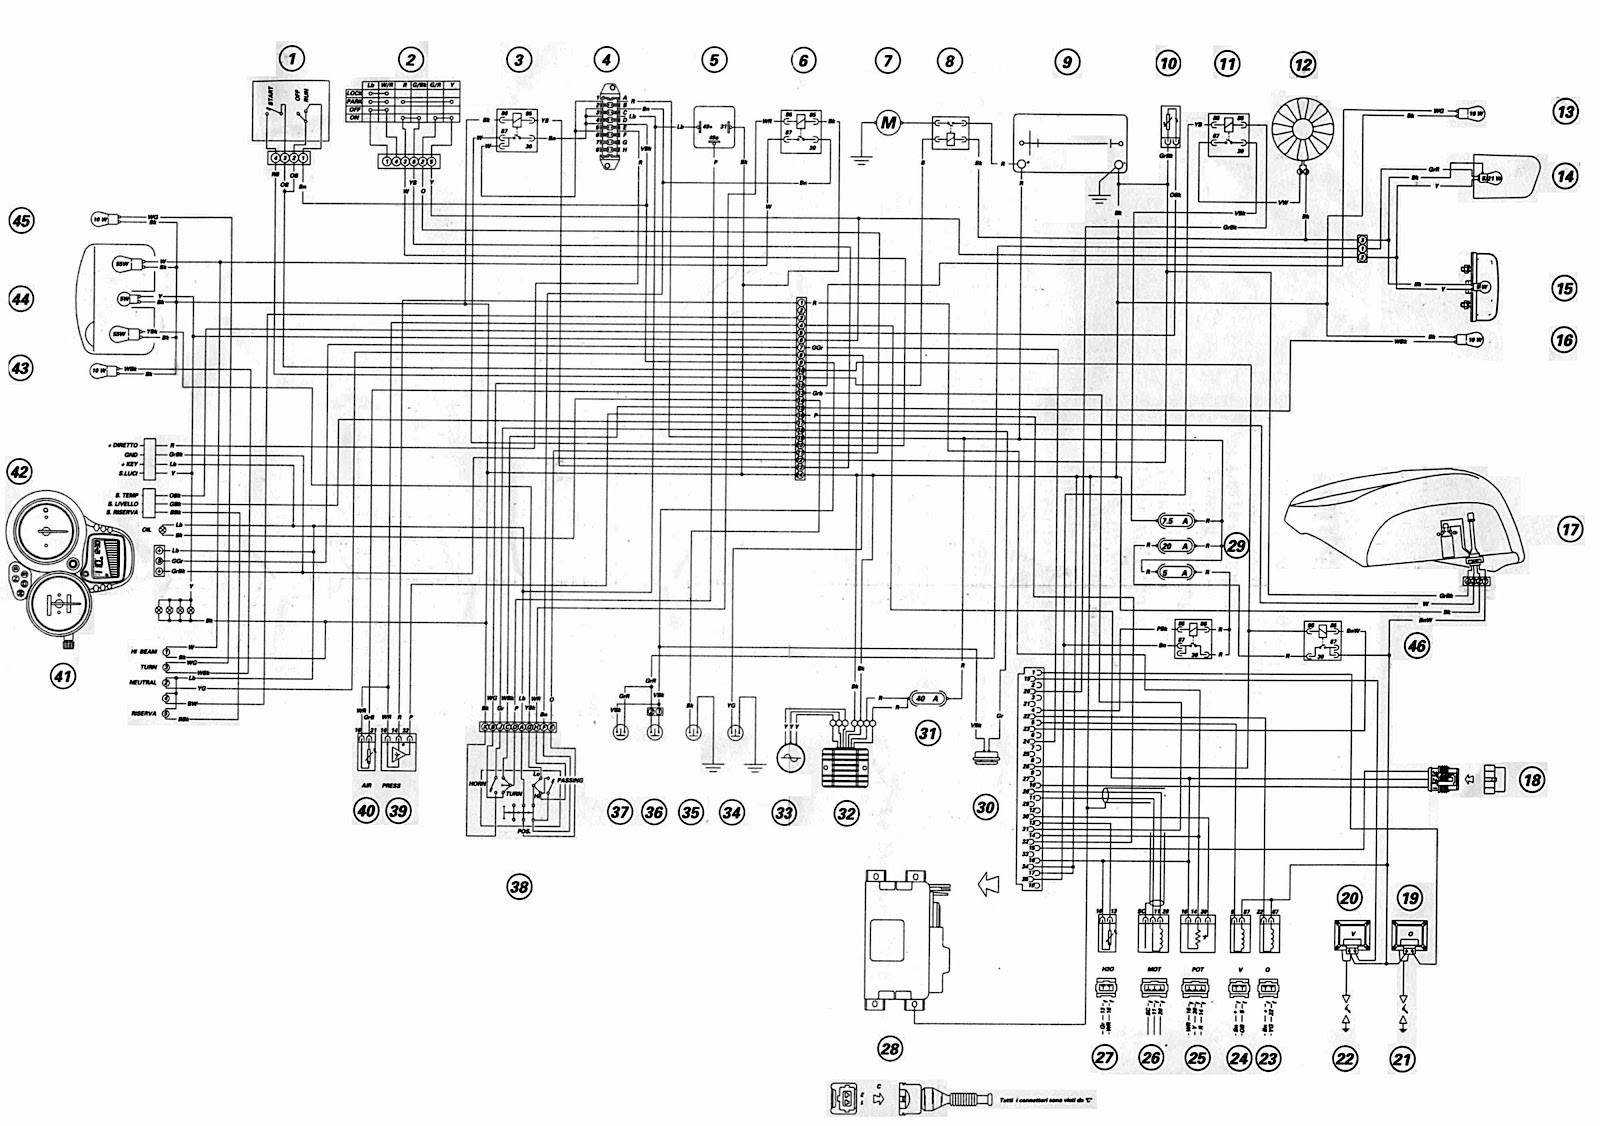 Suzuki Sp 400 Wiring Opinions About Diagram 2003 Ltz X4 125 Motorcycle Schematic Diagrams Rh Ogmconsulting Co 1982 Moto